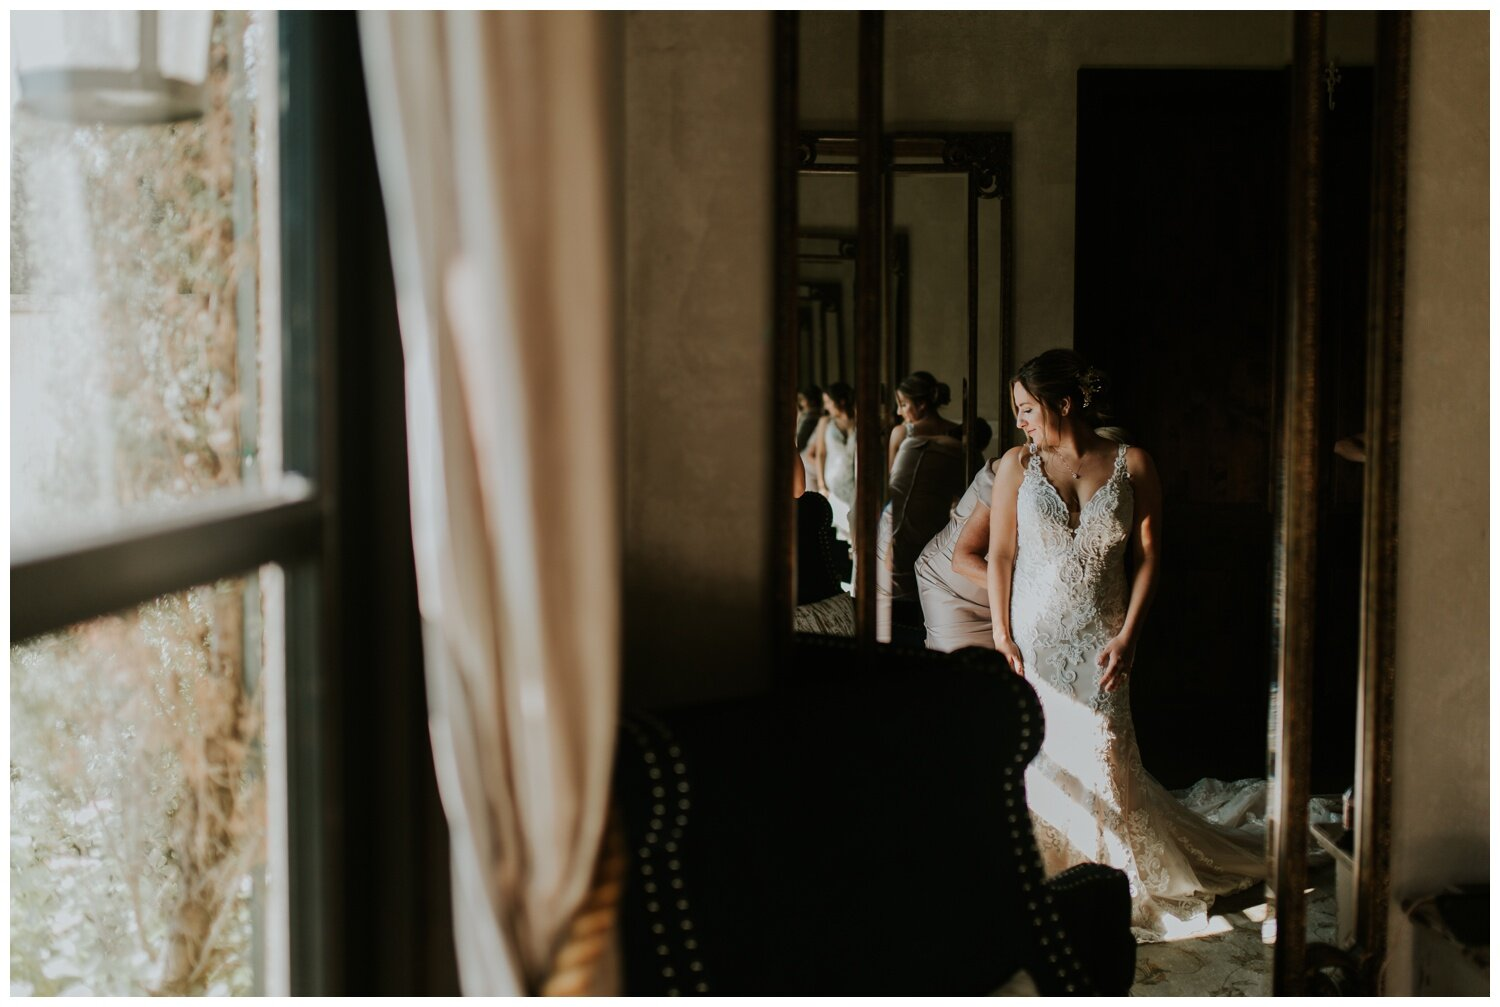 Modern Wedding at Ma Maison in Dripping Springs, Austin, Texas (Joshua and Parisa – Austin Wedding Photographer)_0017.jpg